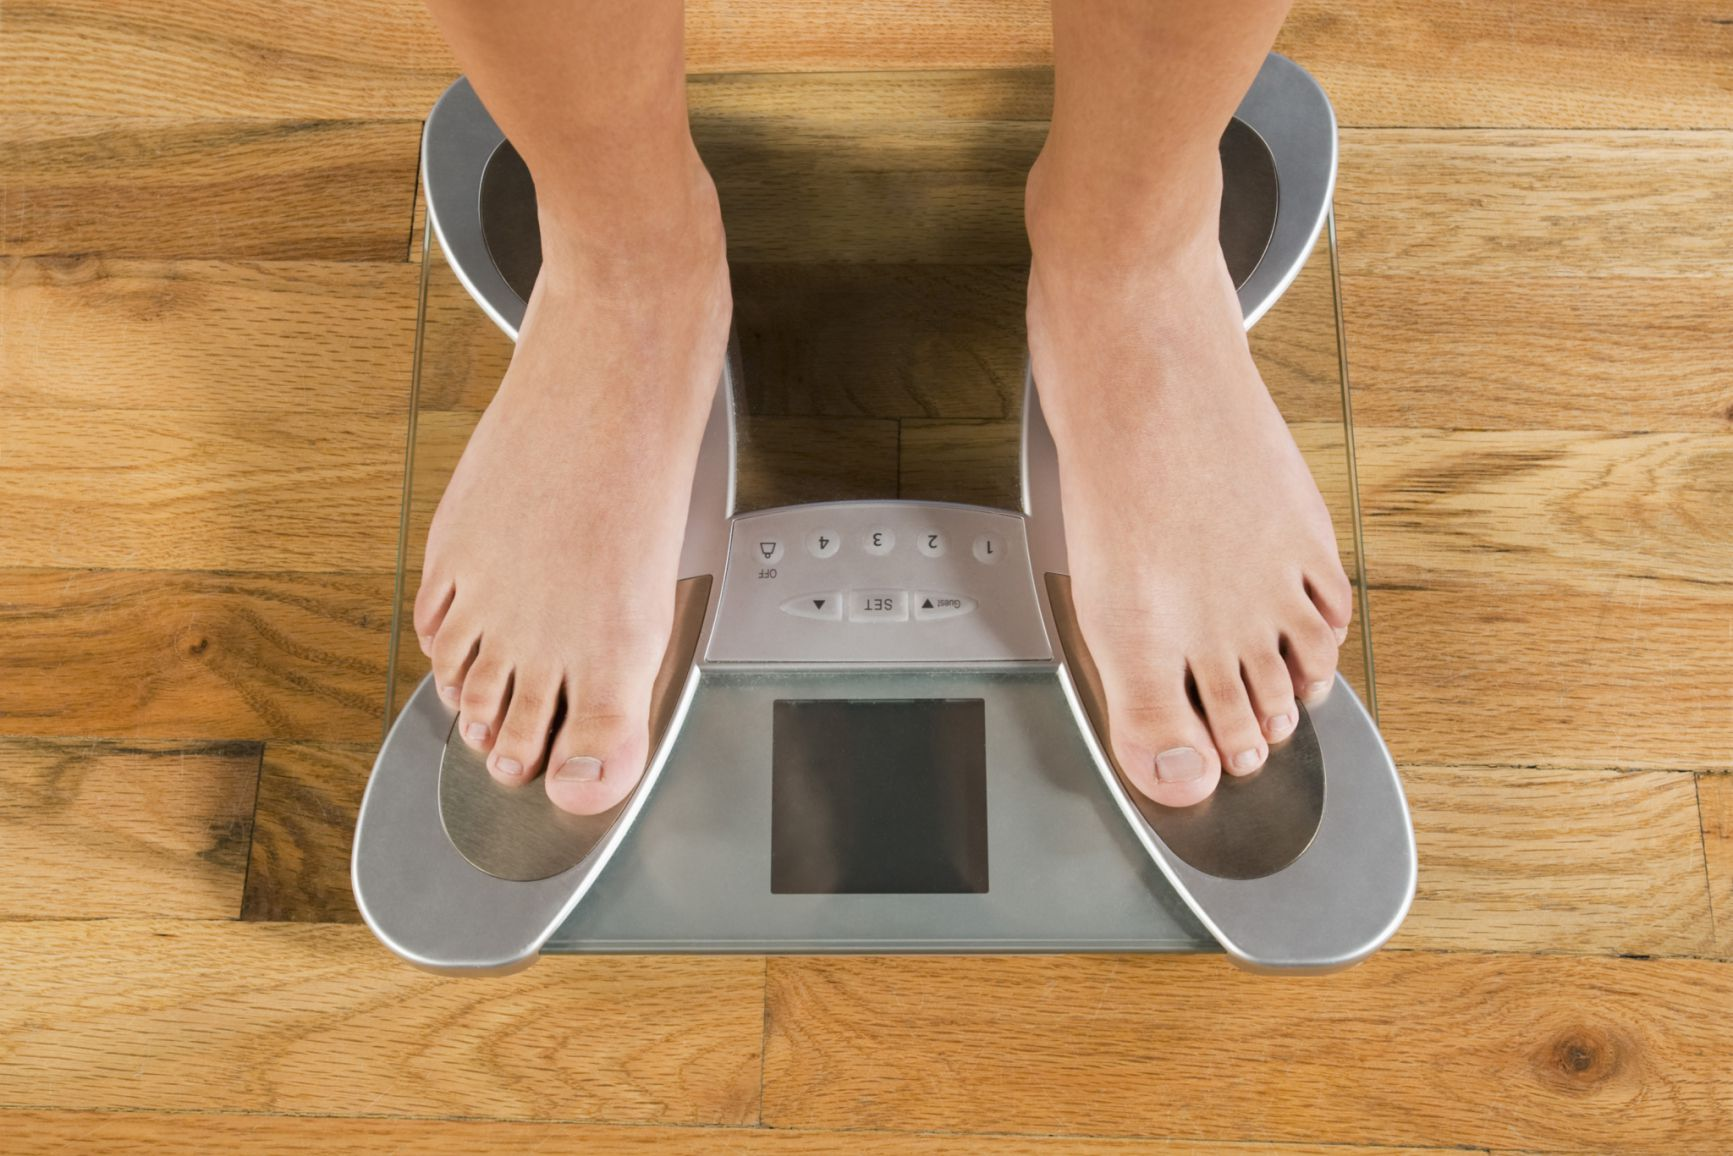 Is Being a Little Overweight OK? The BMI Controversy